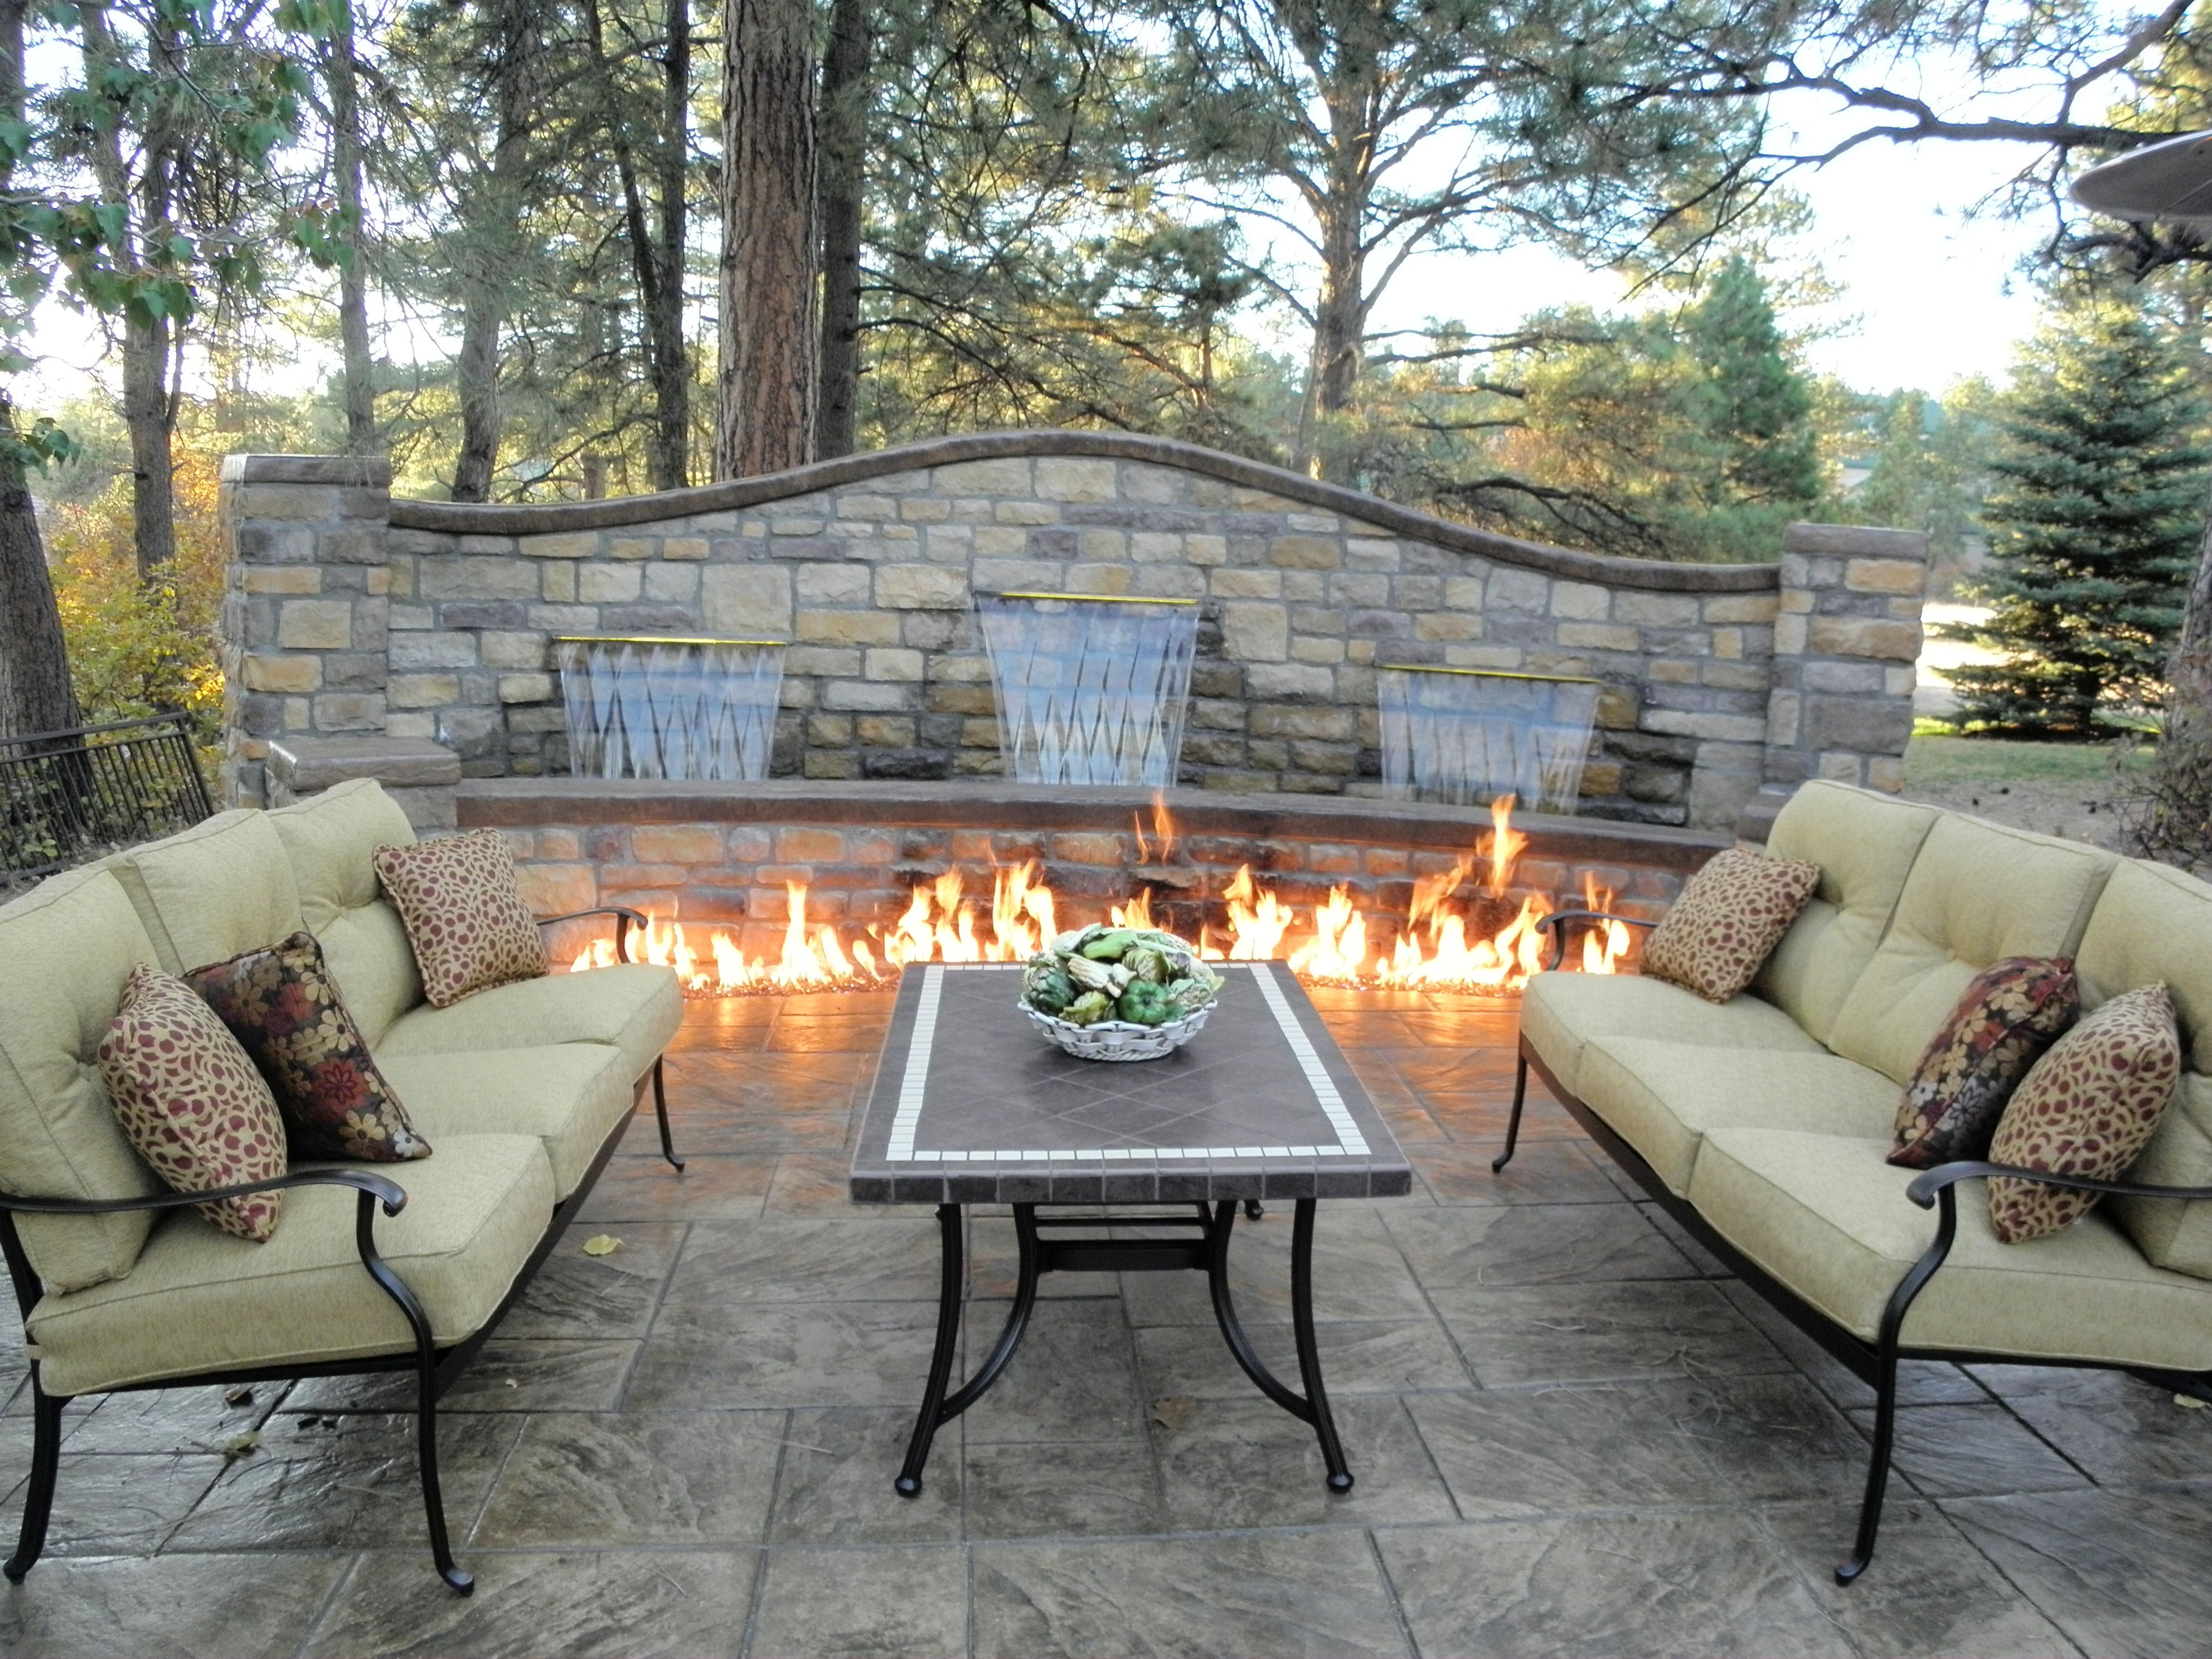 dfaa7c3463d6434f89d3f83dfaacb5c6 Top Result 50 Awesome Outdoor Fire Features Gallery 2018 Jdt4